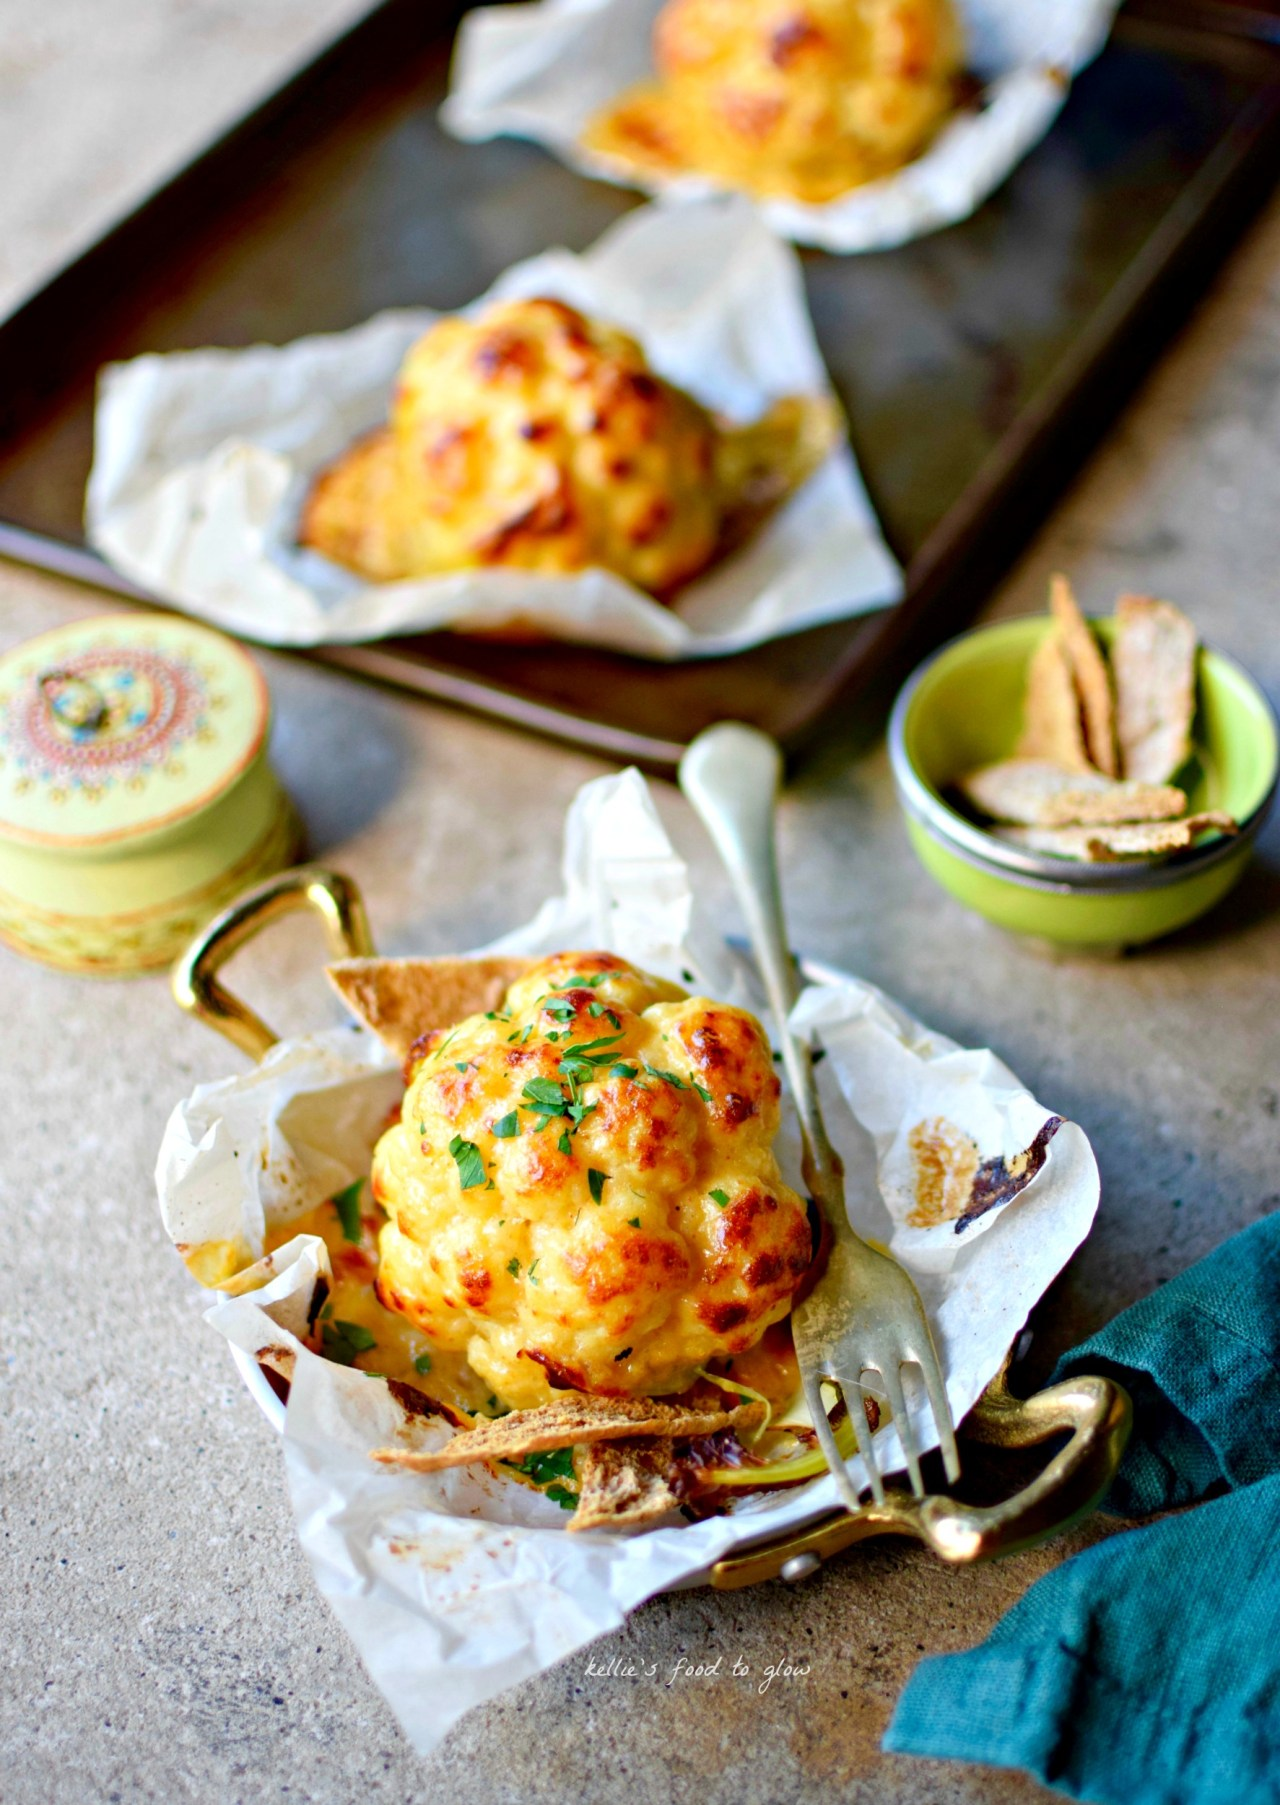 Cauliflower covered in bubbling, boozy rarebit cheese sauce is hard to resist, especially when the cauliflower is given a boost through a simple brining. Enjoy as a side dish, light lunch or supper. Easy cheesy goodness guaranteed!